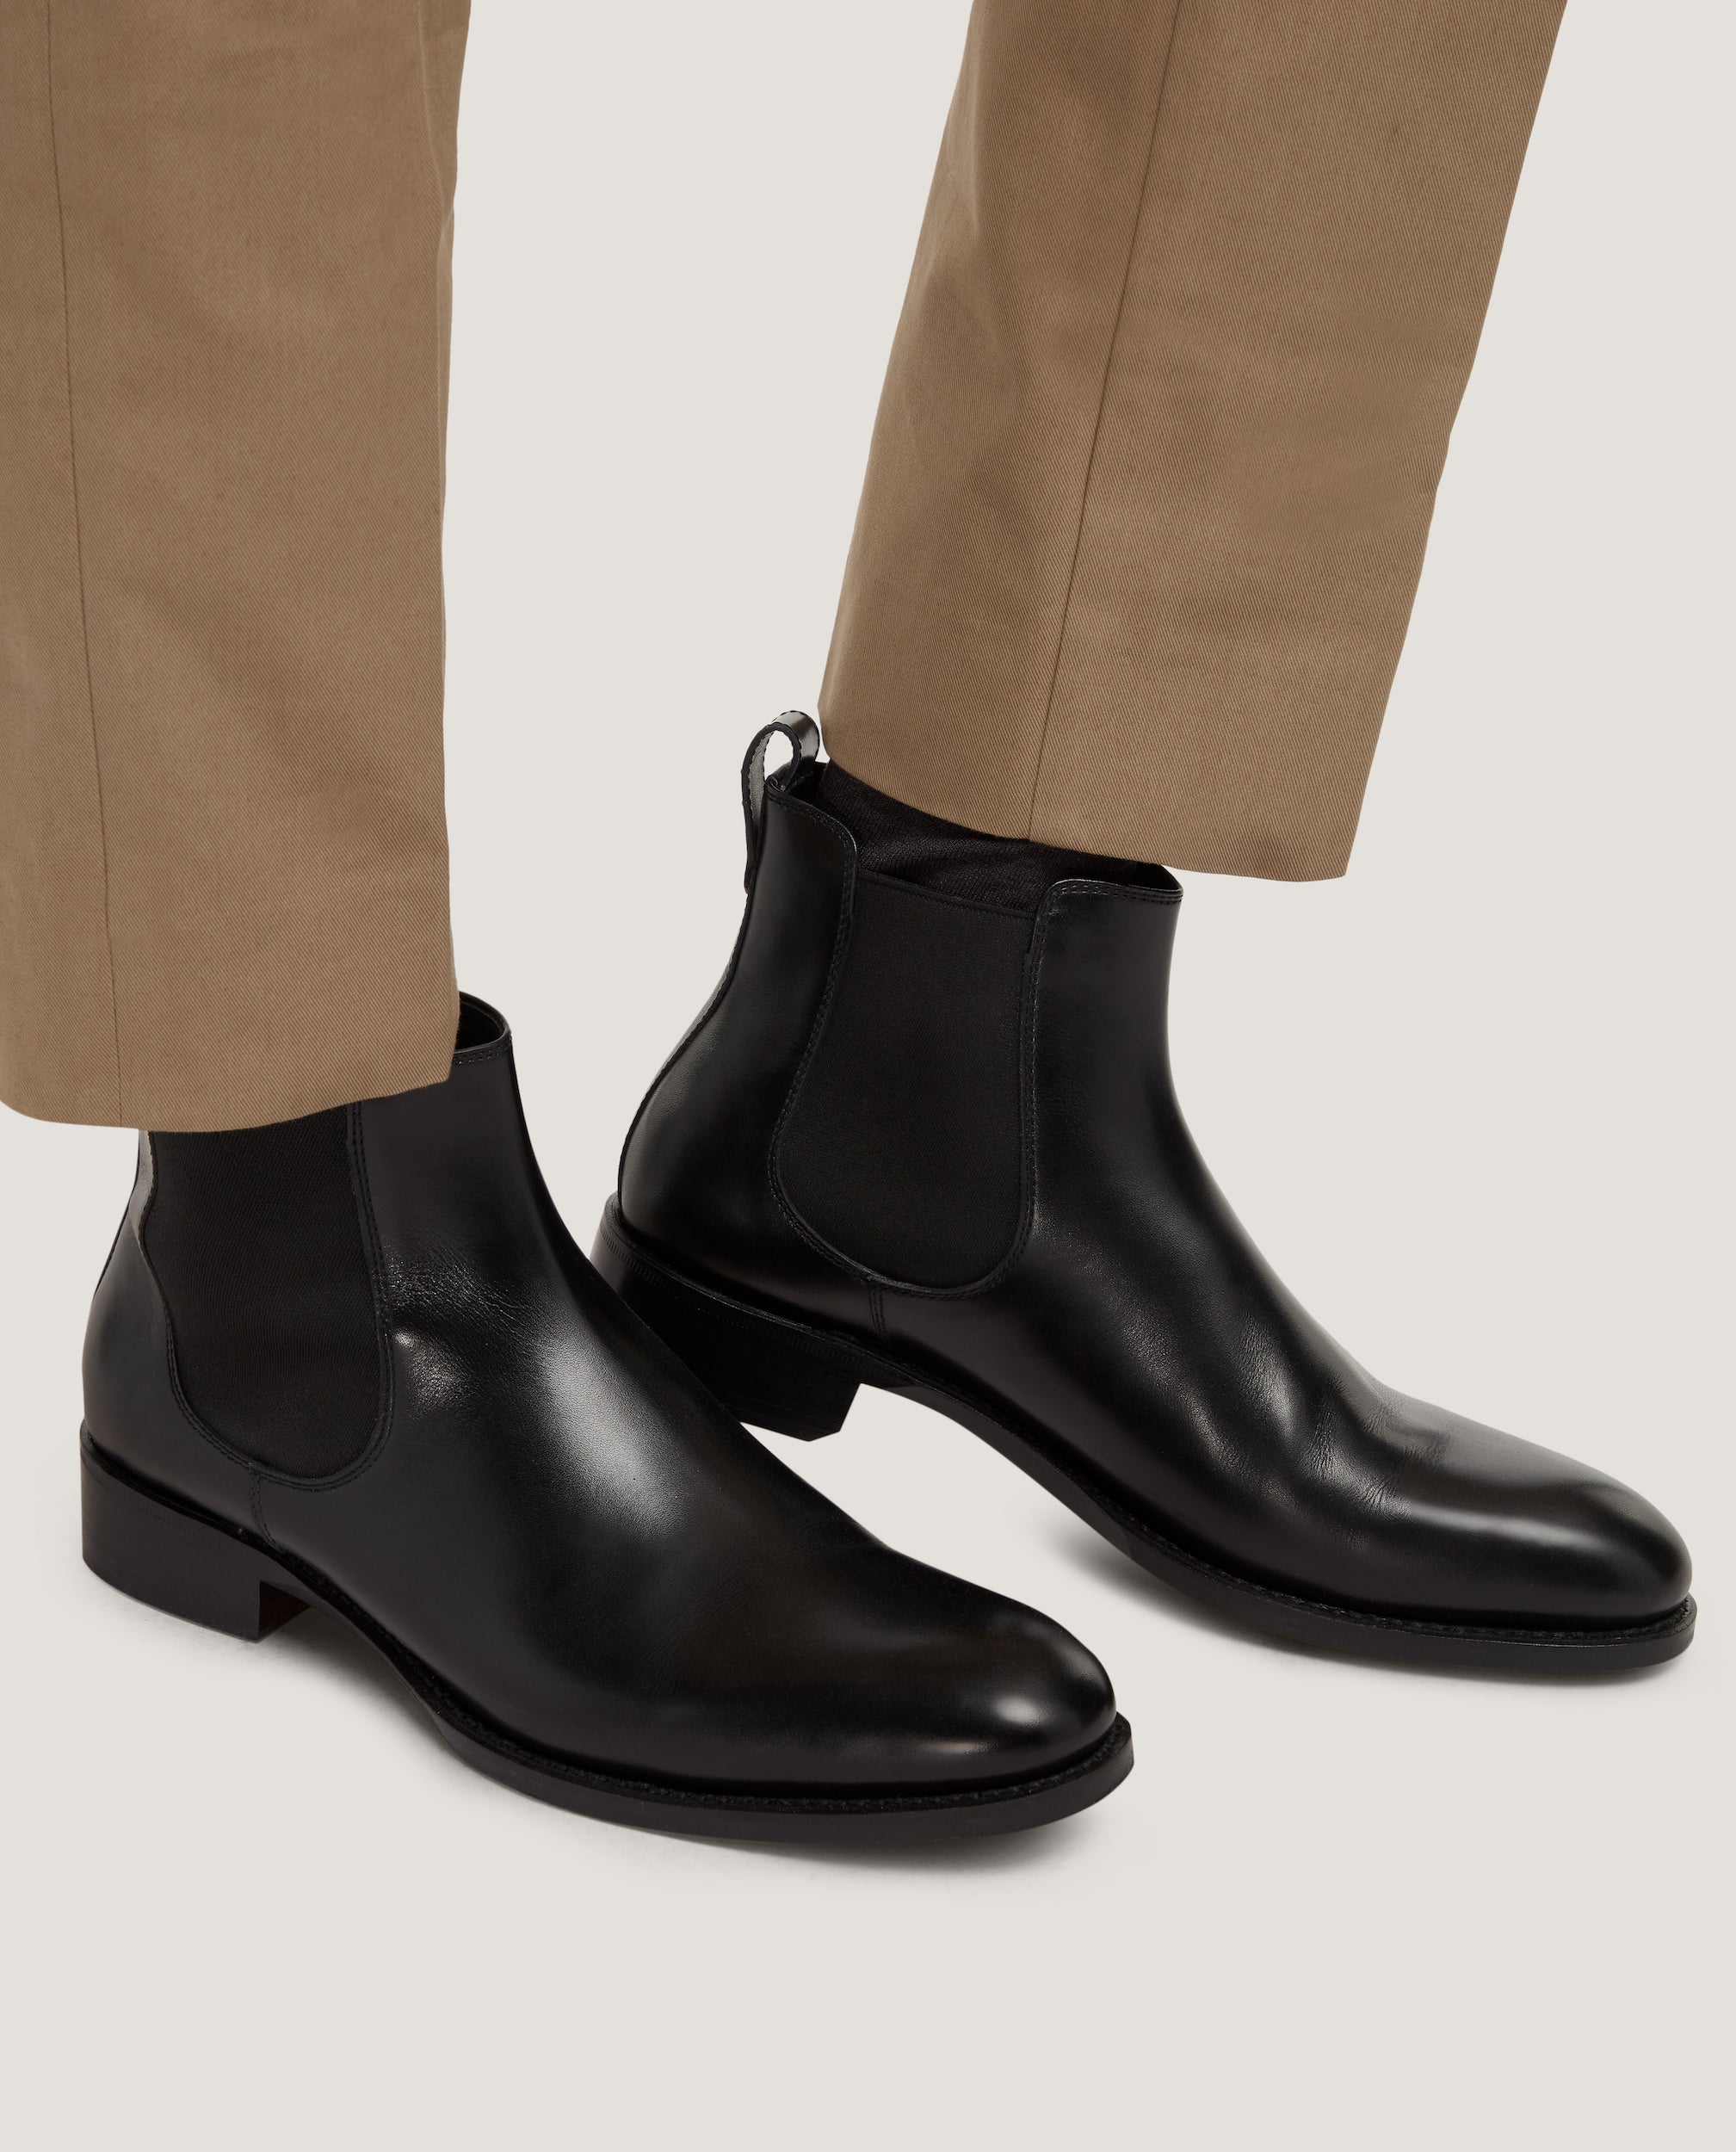 WALTER CHELSEA BOOT by Salle Privée